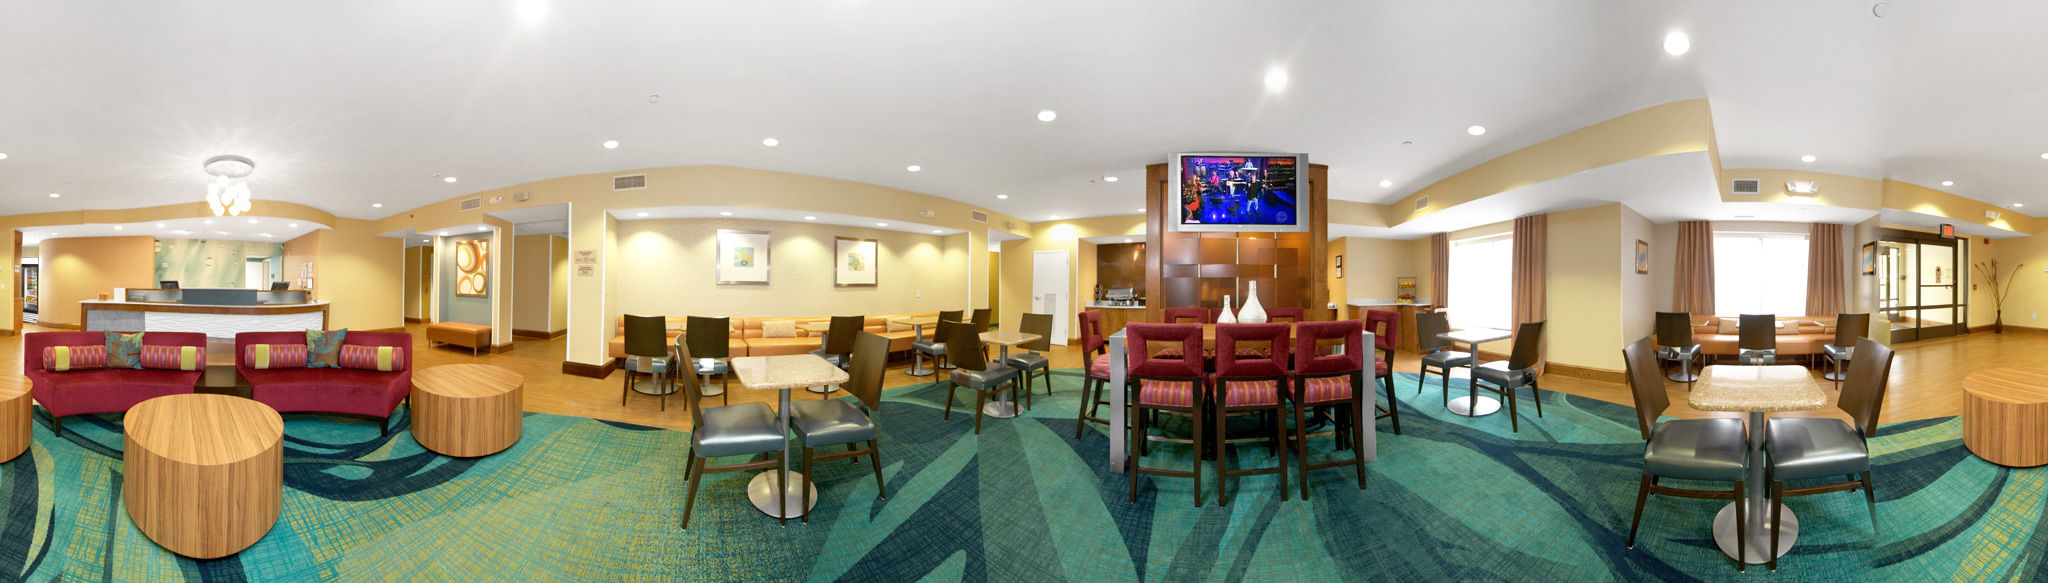 SpringHill Suites by Marriott Pinehurst Southern Pines image 1